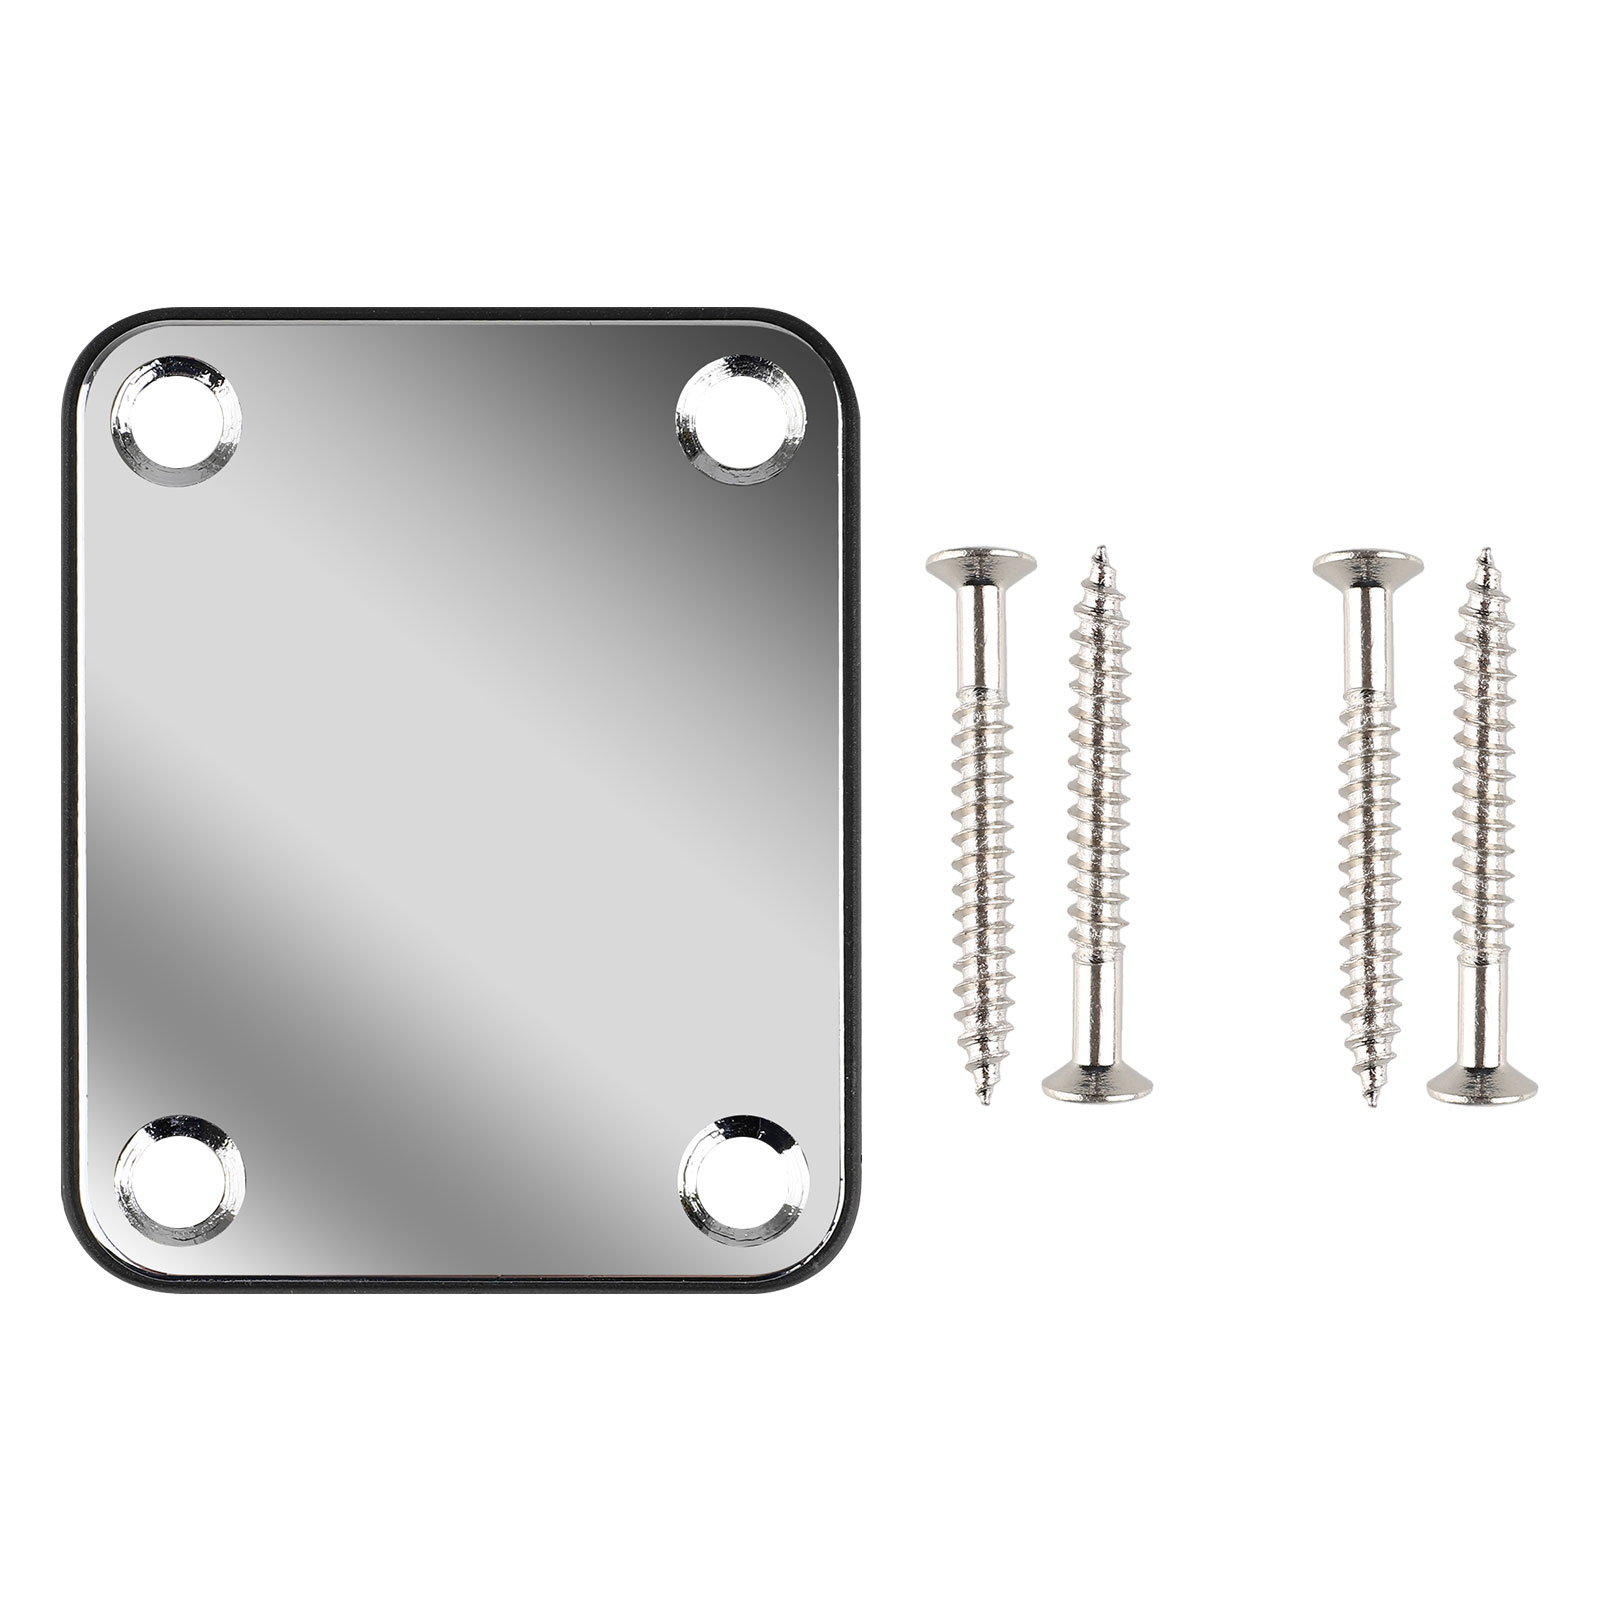 Guitar Bolt Neck Plate Chrome Bass Fender, Fender Chrome Neck Joint Plate & 4 Screws for Electric/Bass Guitar Strat Tele